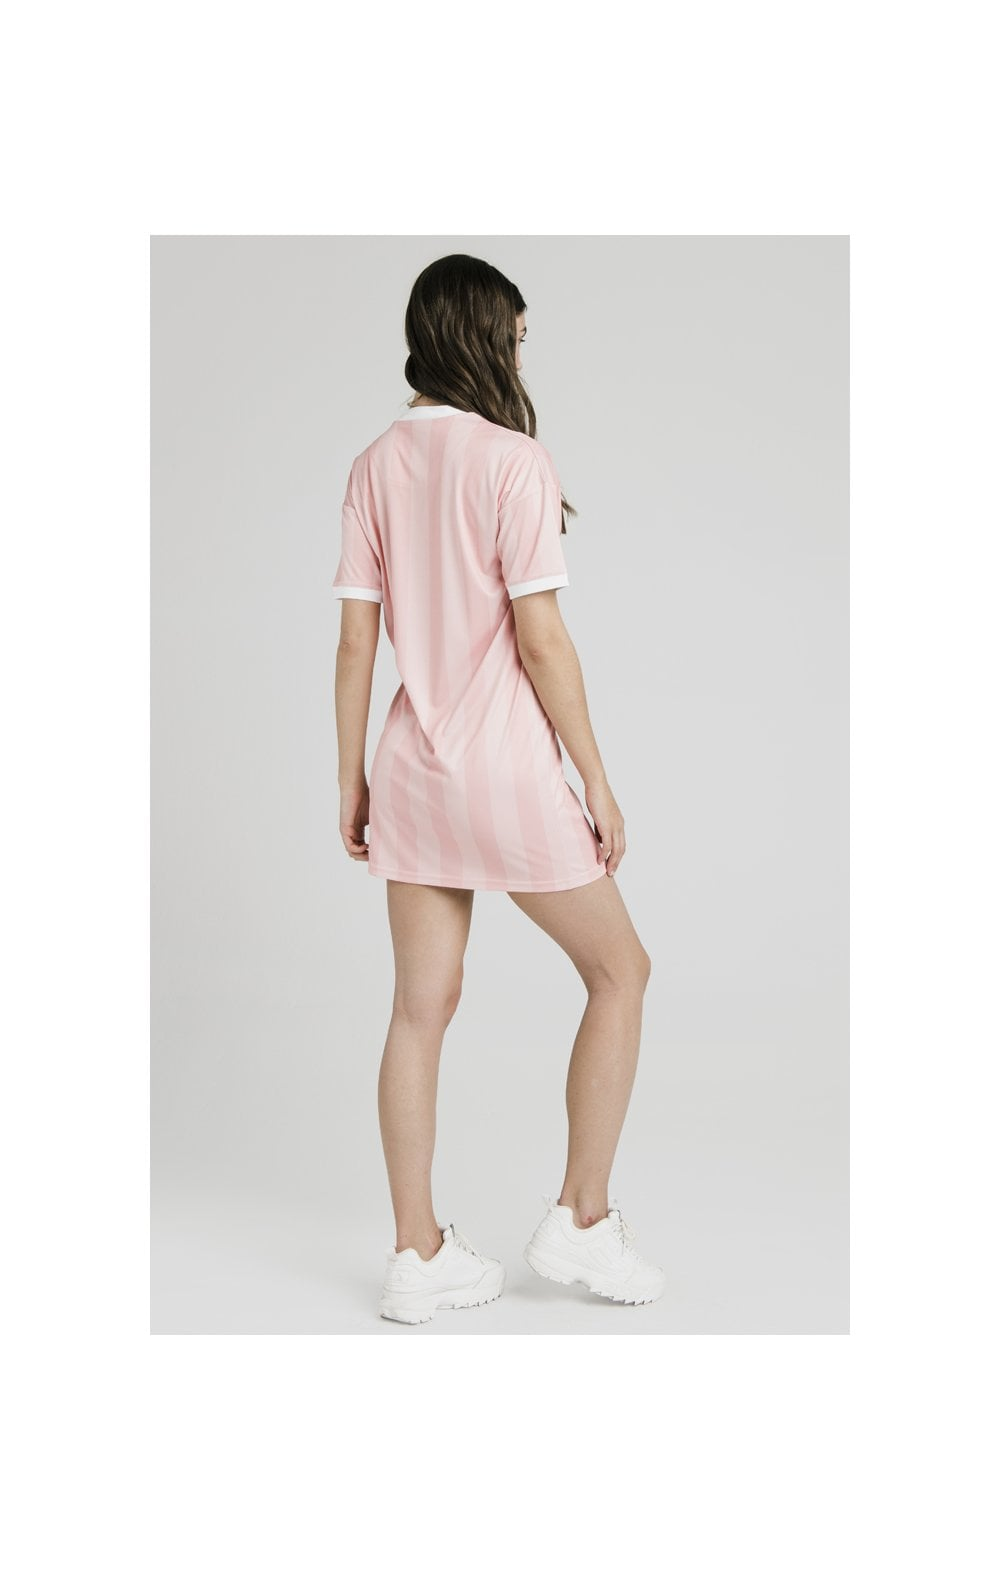 SikSilk Luxury Poly Dress - Apricot Blush (6)